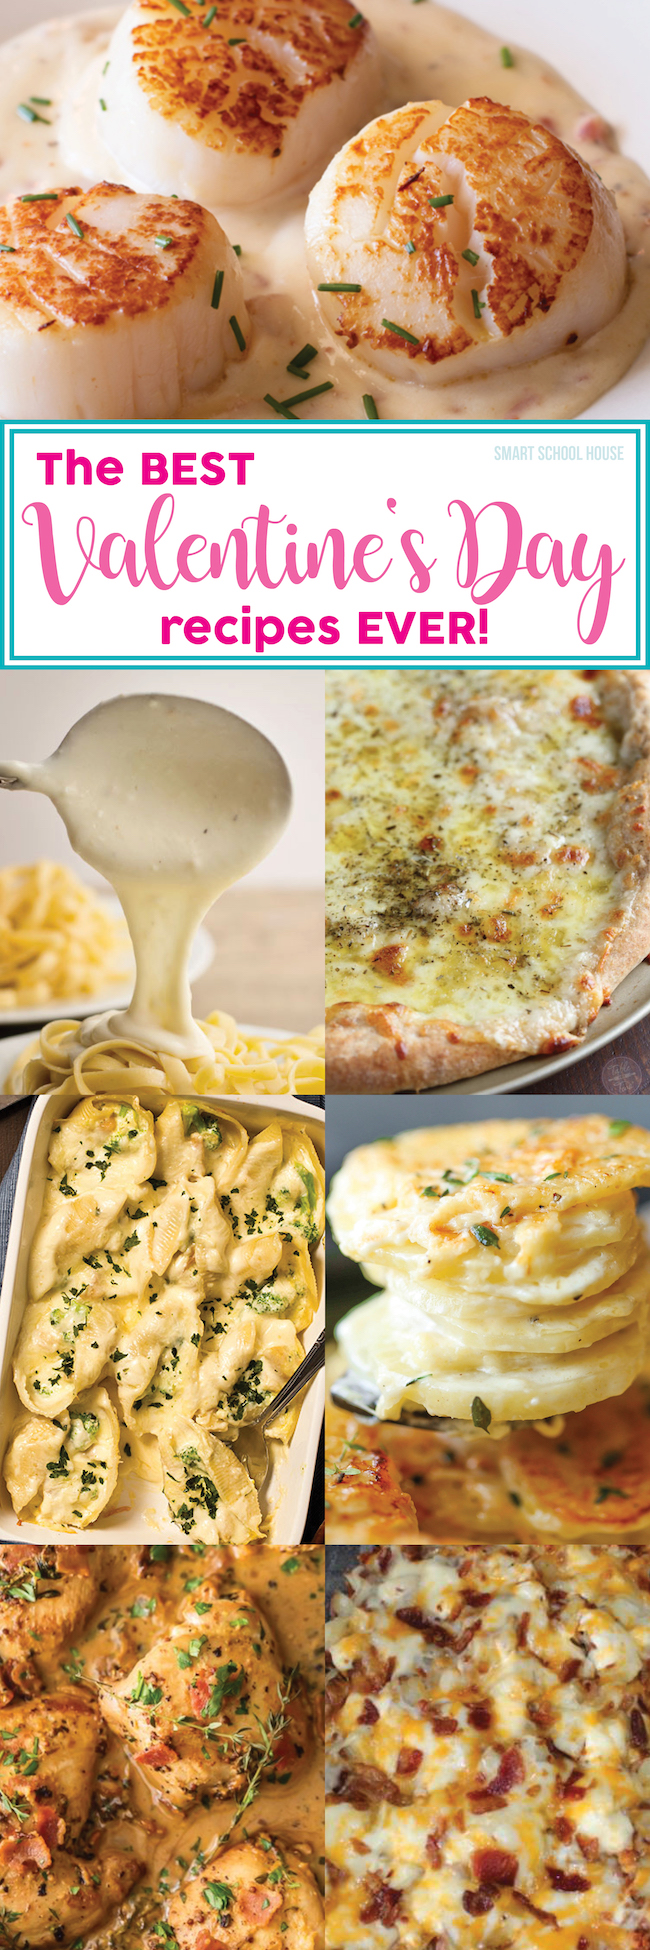 The Best Valentine's Day Recipes Ever #ValentinesDay #ValentinesDayRecipes #ValentinesDayDinner #ValentinesDayIdeas #DIYValentinesDay